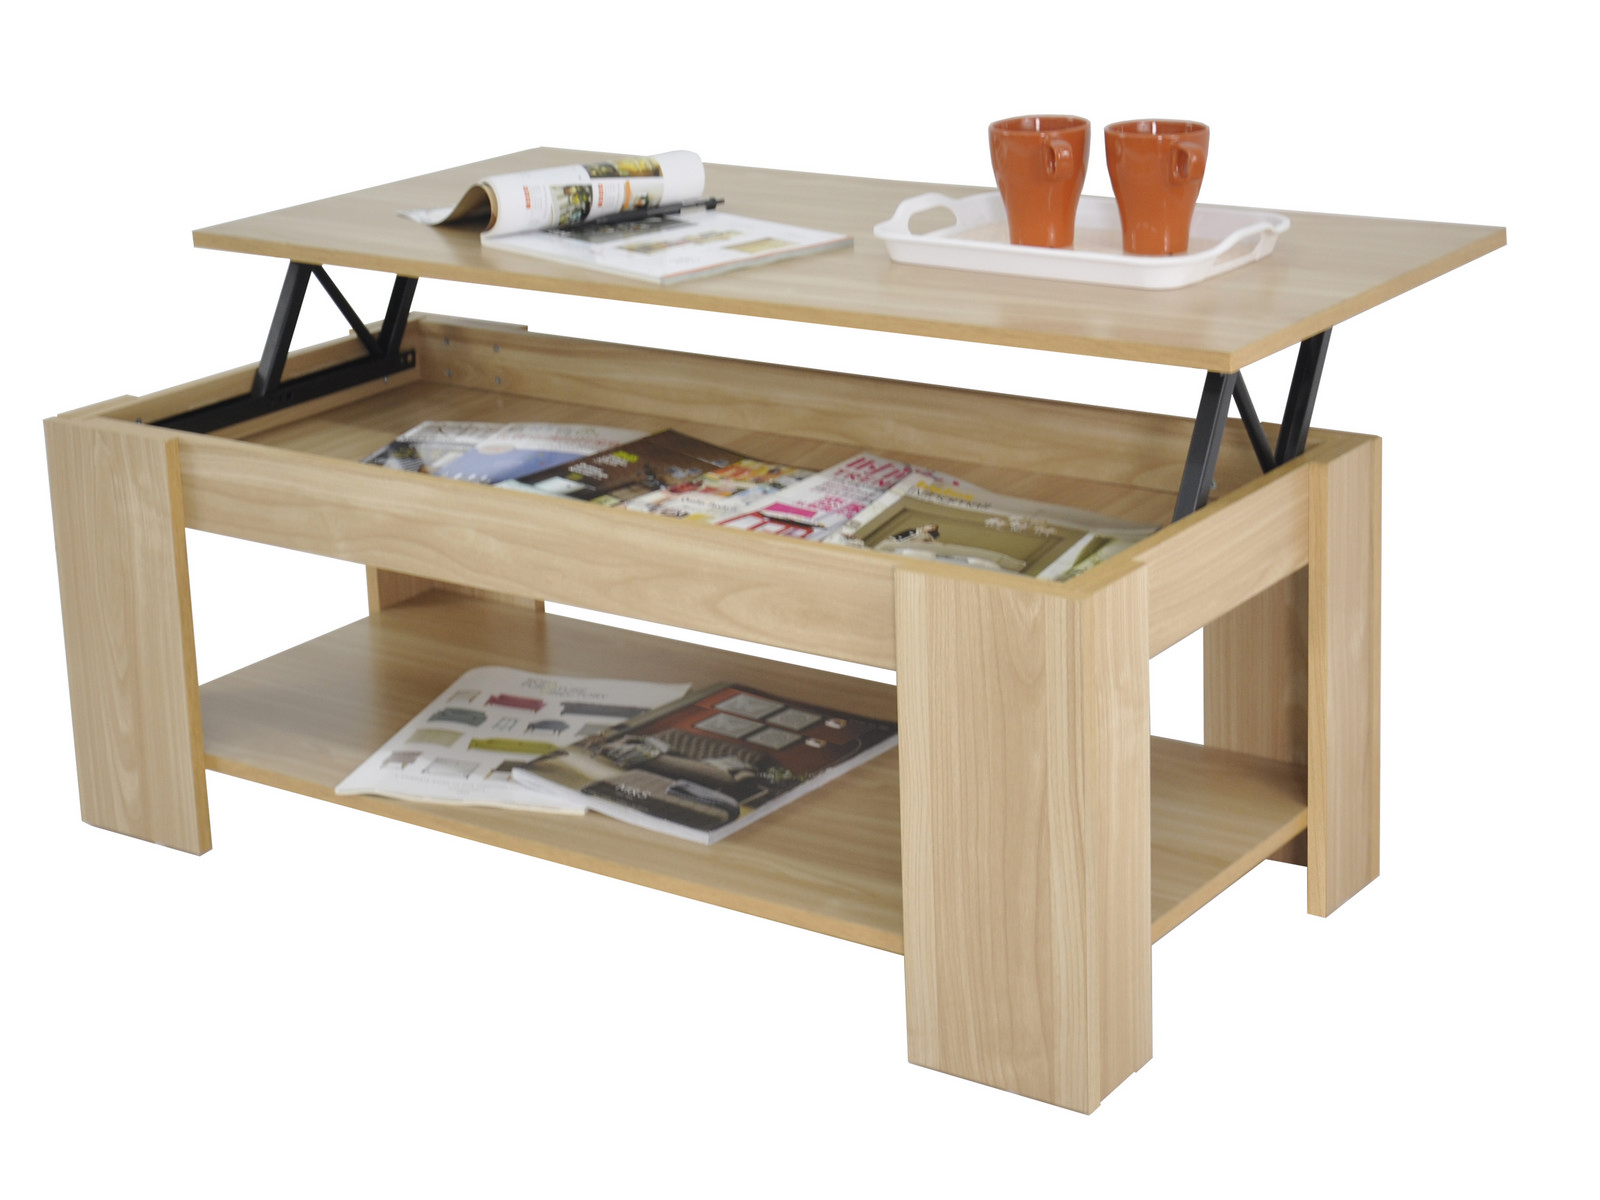 New Kimberly Lift Up Top Coffee Table With Hidden Storage Shelf